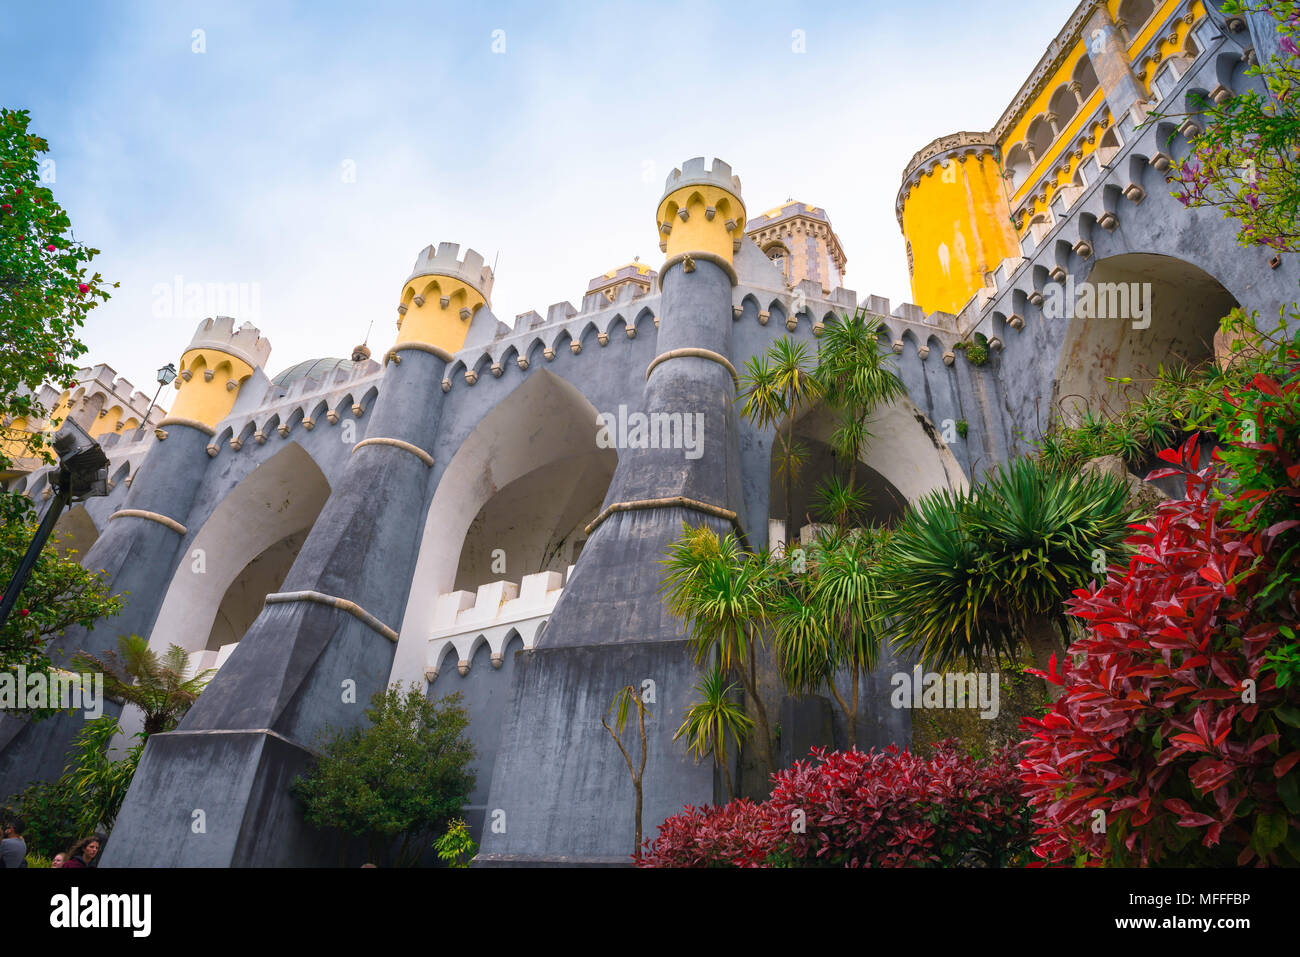 Sintra Portugal, view of the huge ramparts and buttresses supporting the colorful Palacio da Pena in Sintra, Portugal. Stock Photo